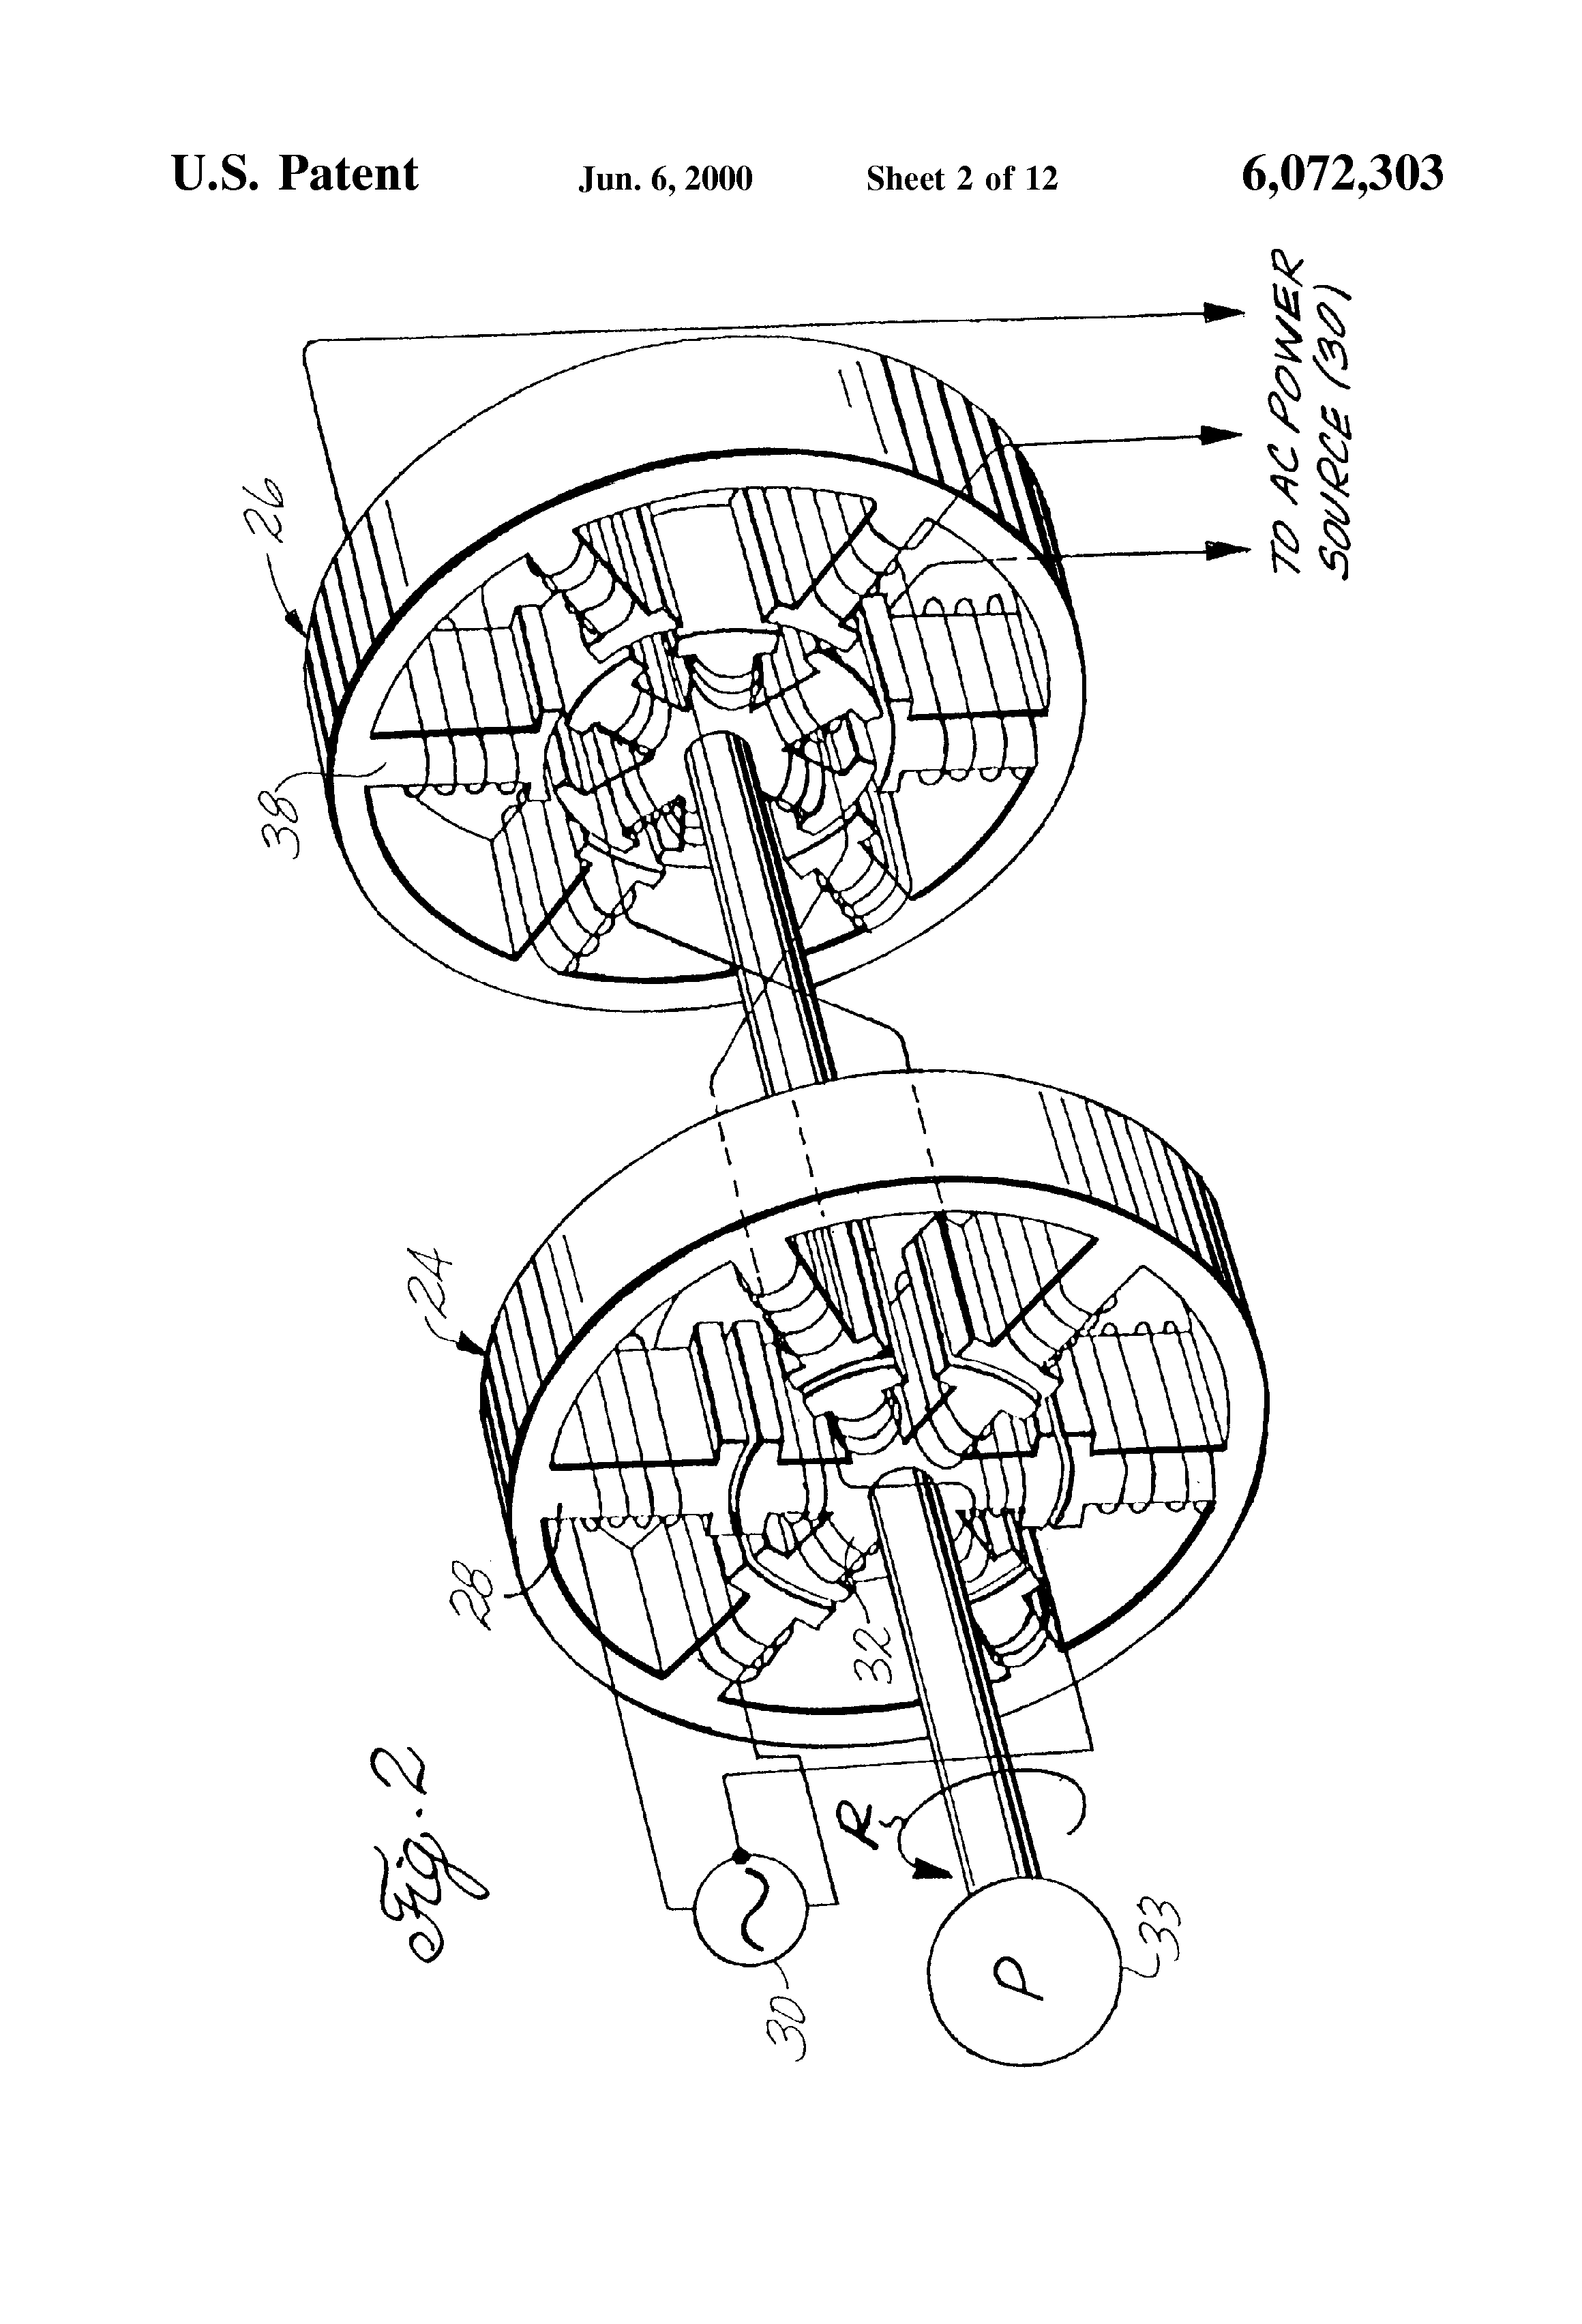 Line Art Generator From Image : Patent us method and apparatus for compensating a